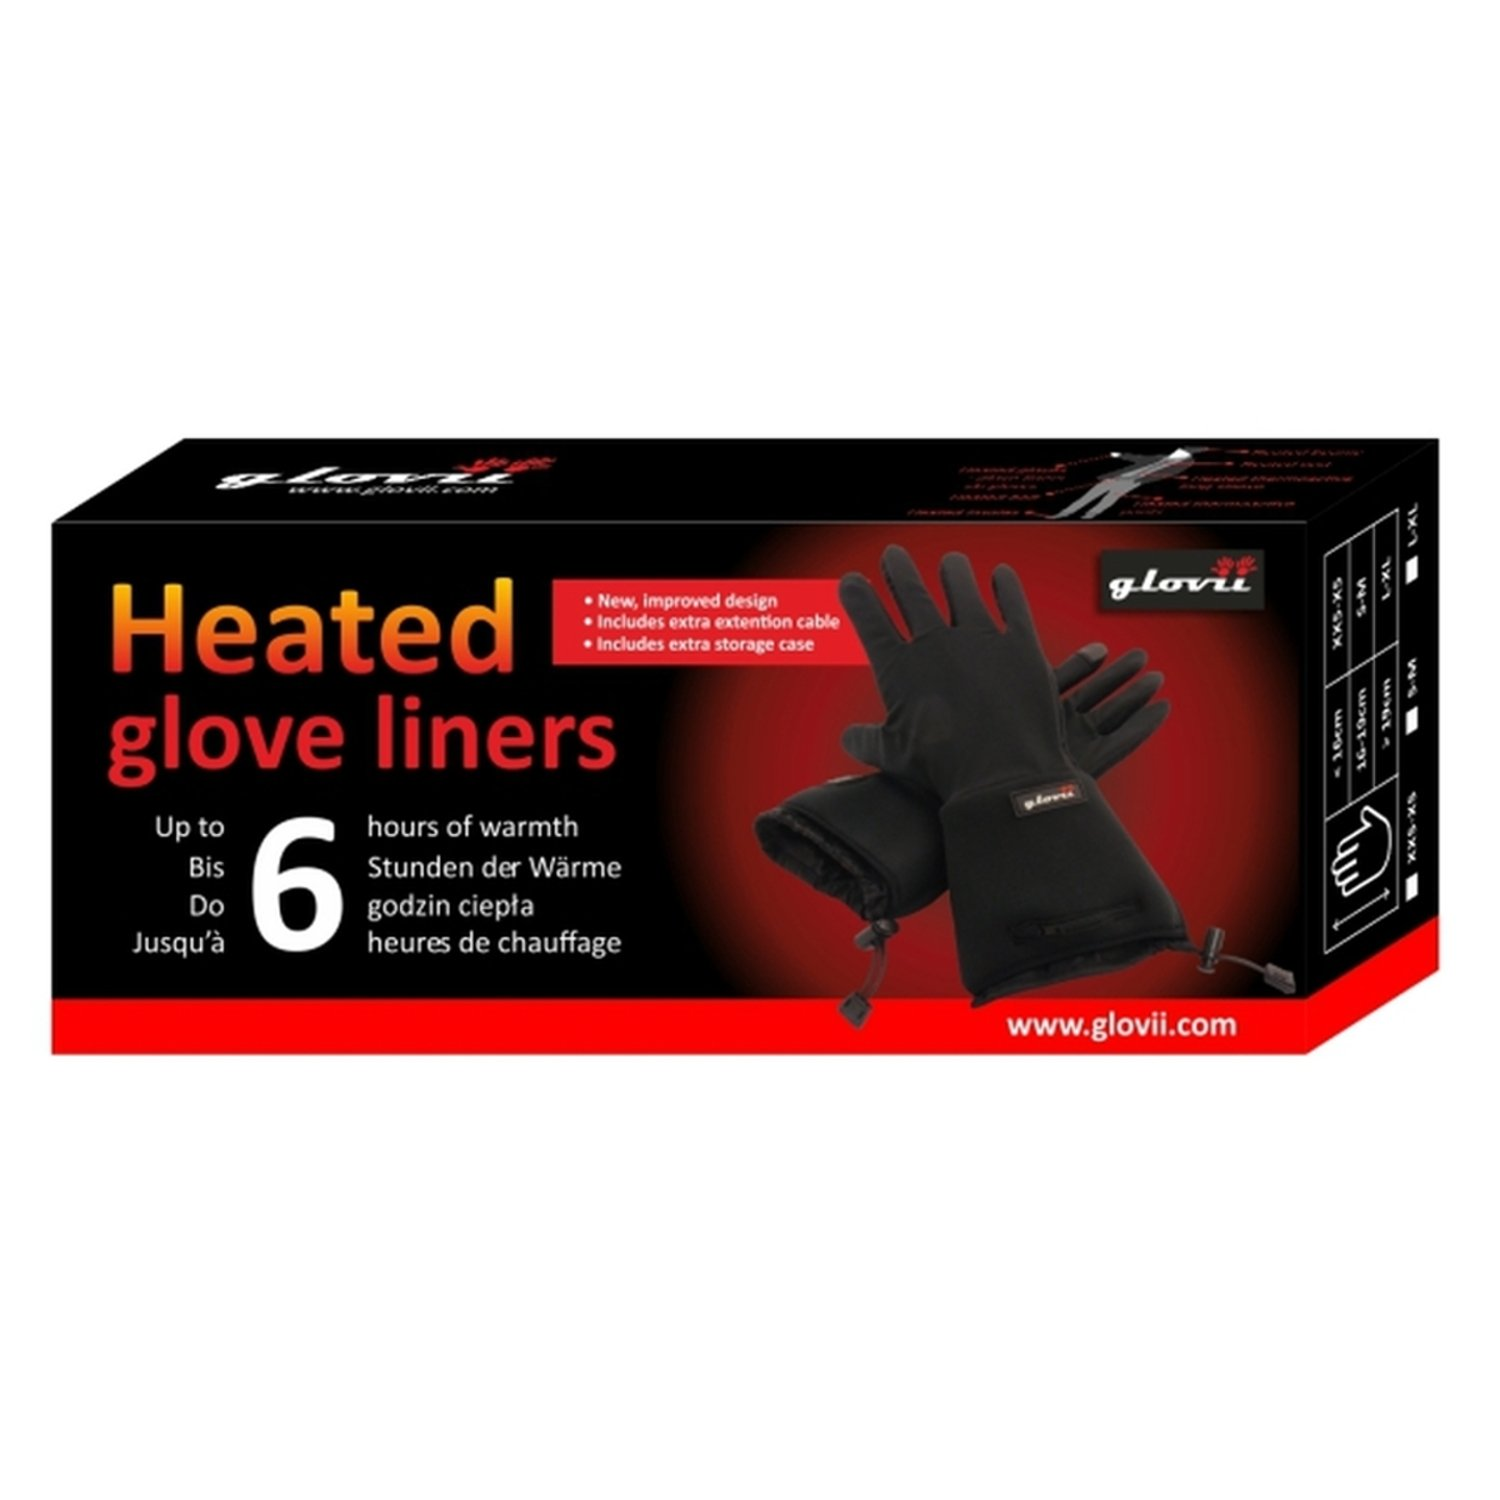 Battery Heated Universal Touchscreen Glove Liners, up to 6 hours of warmth at one recharge - improved 2014 model with free battery extention cable and free storage case - Glovii by Glovii (Image #6)